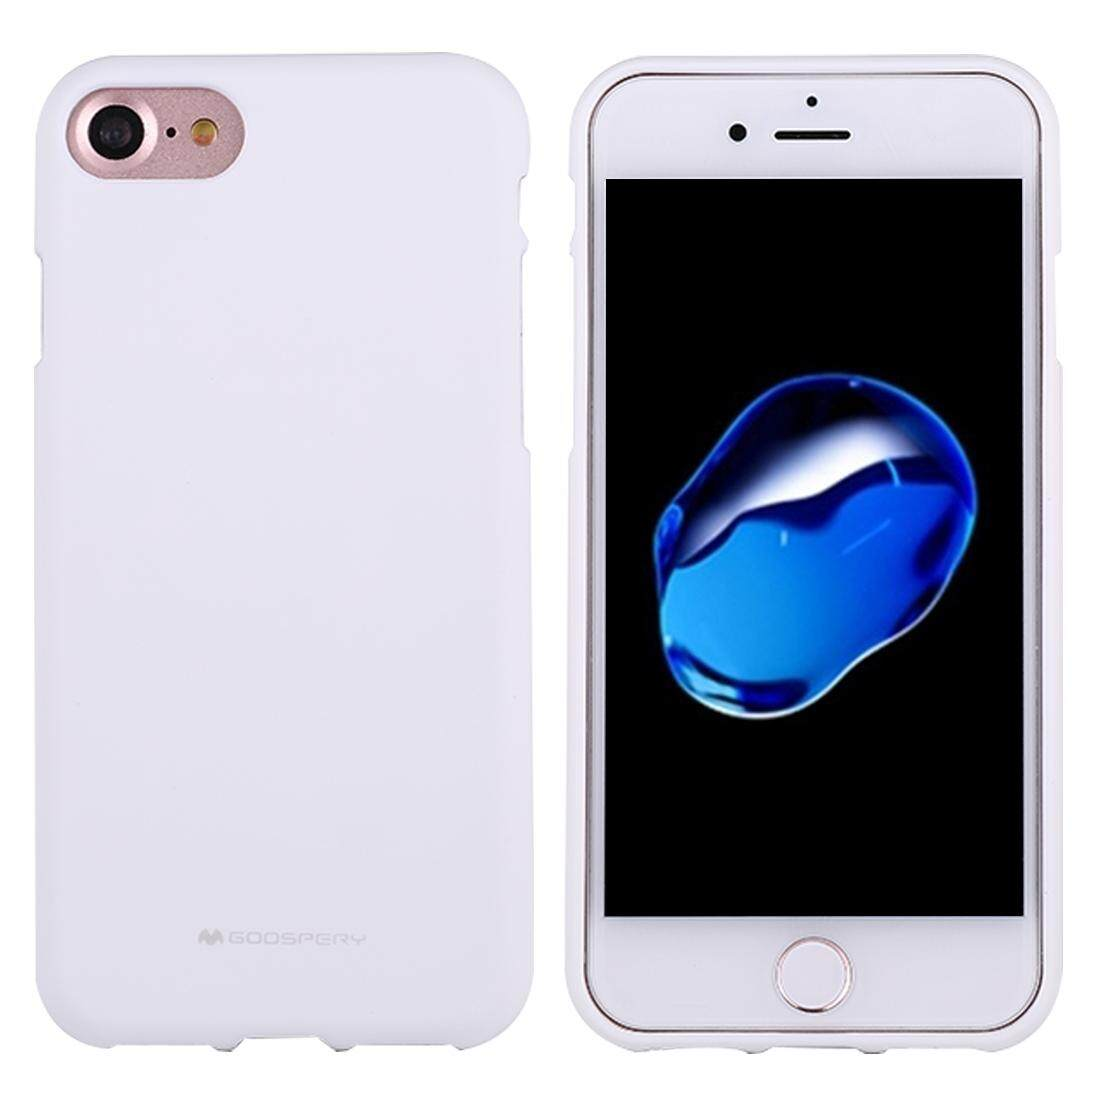 Check For Price Of Iphone 8 7 White Gold Marble Pattern Soft Goospery Blue Moon Diary Case Black Mercury Feeling And Liquid State Tpu Drop Proof